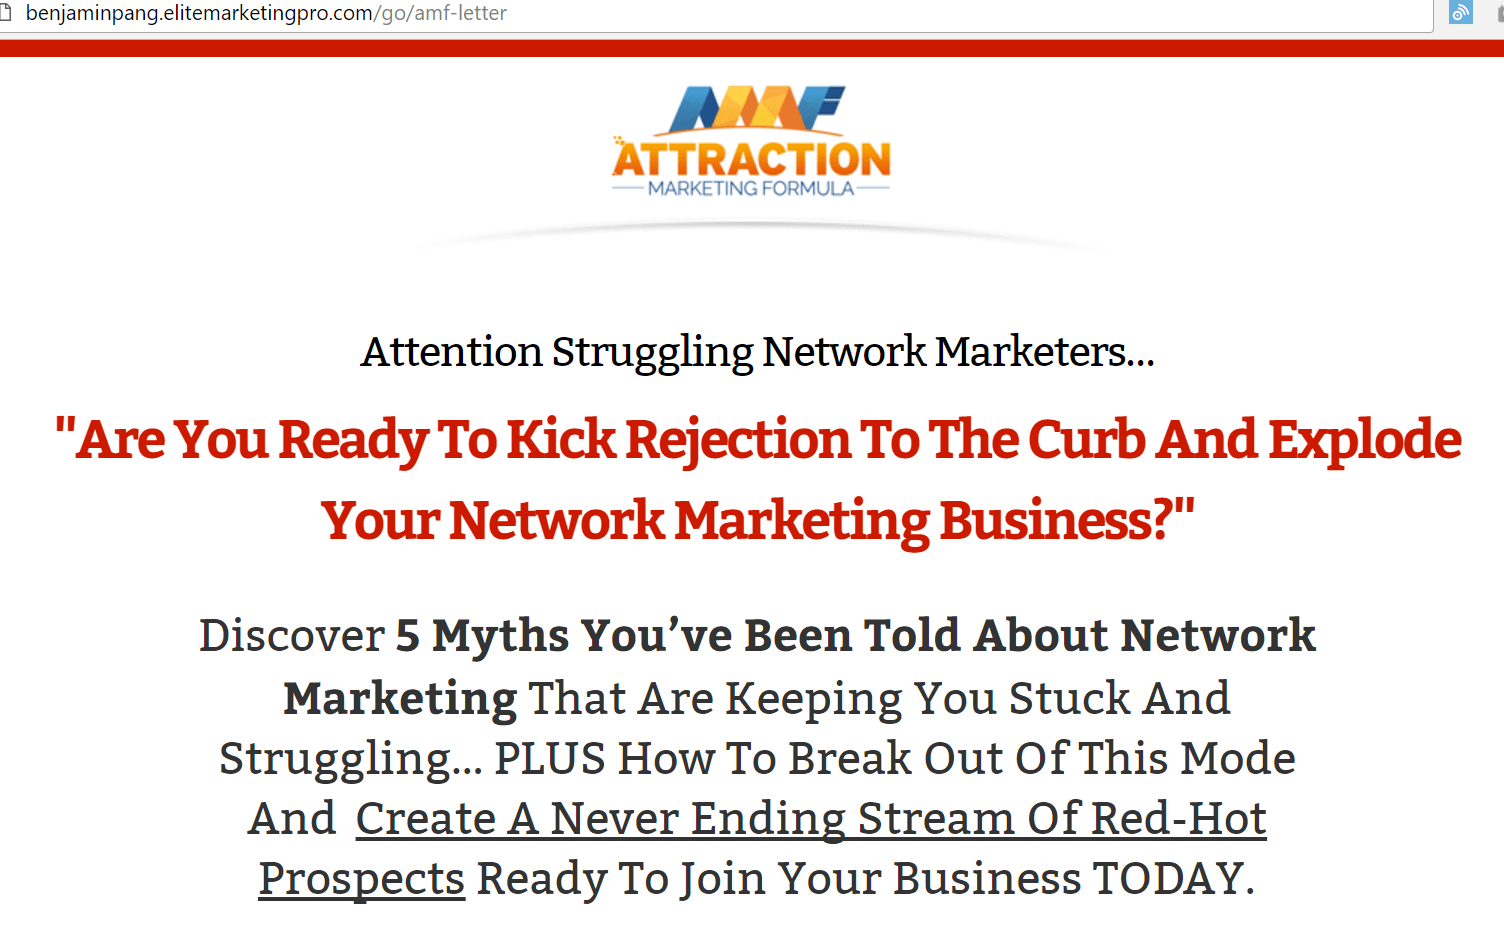 attraction marketing formula sales letter